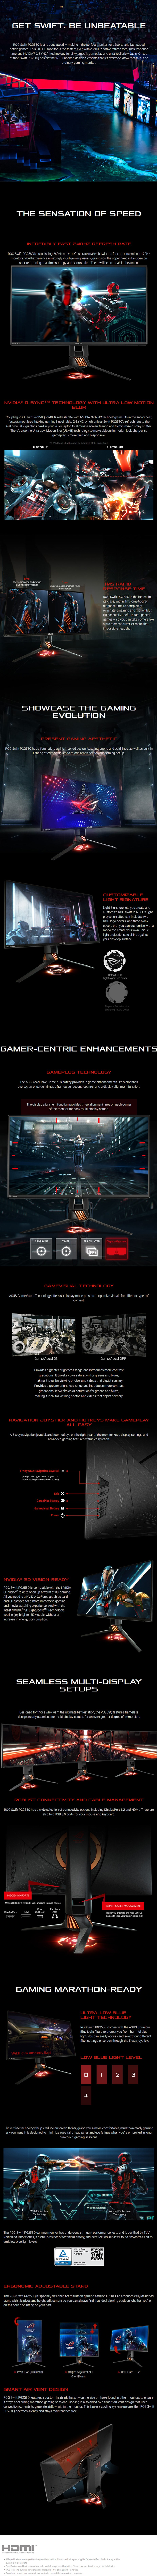 """ASUS ROG Swift PG258Q 24.5"""" FHD G-Sync 240Hz Gaming Monitor Display Overview 1"""